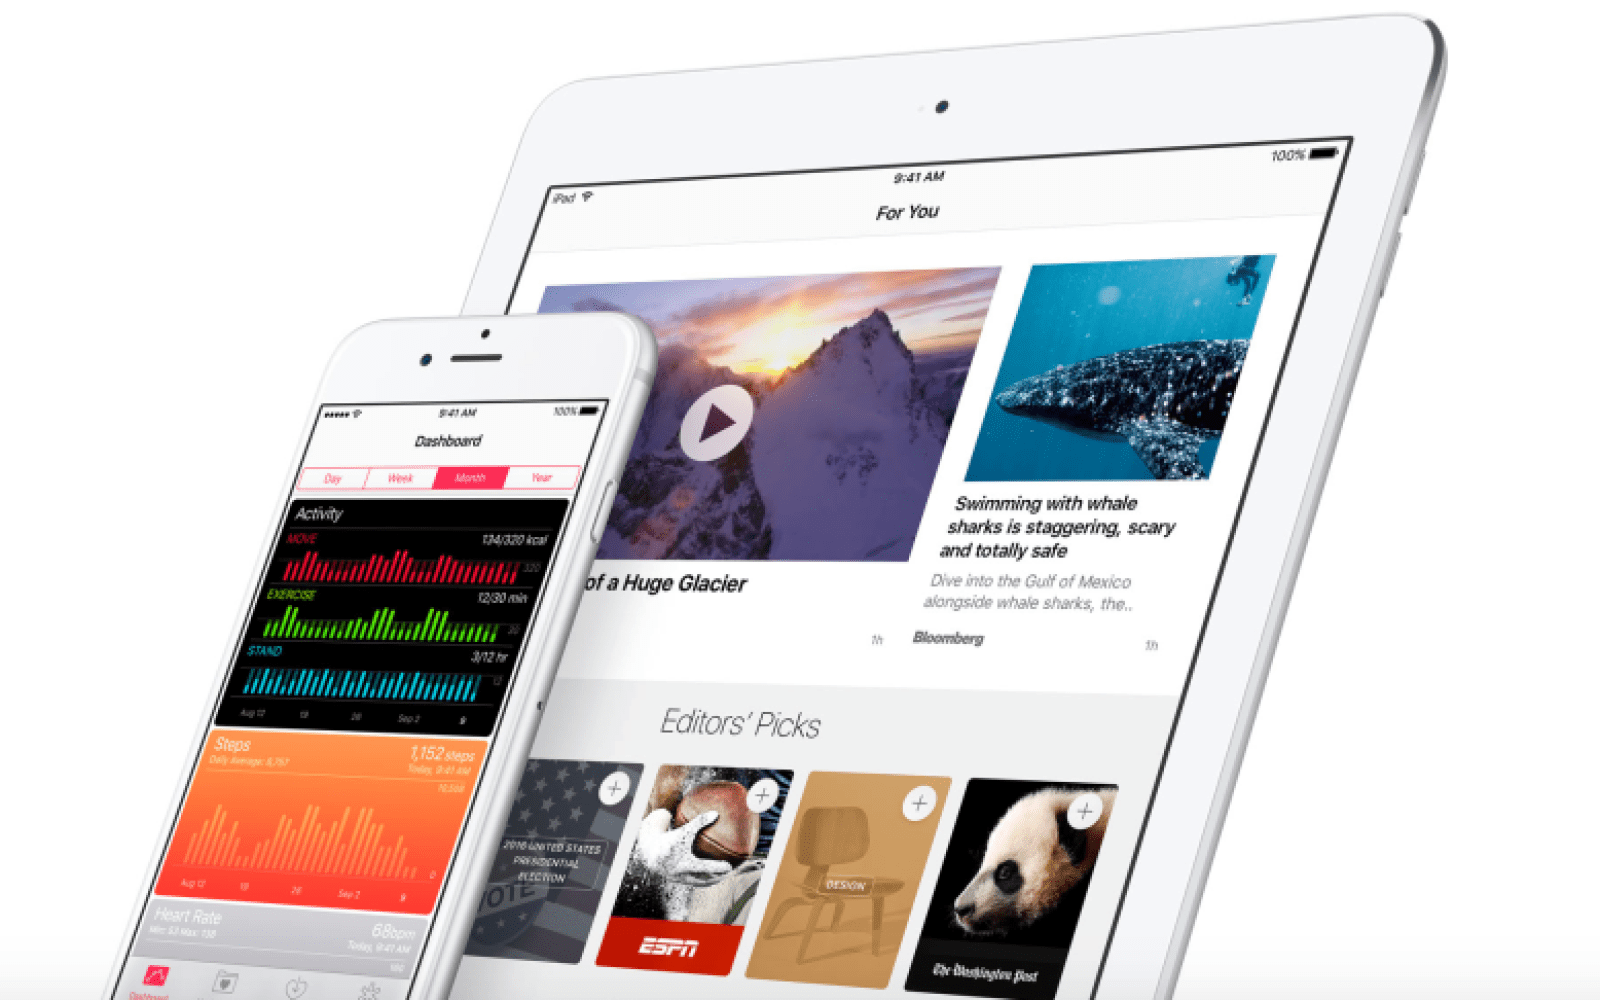 Apple releases iOS 9.3.3 with bug fixes for iPhone and iPad